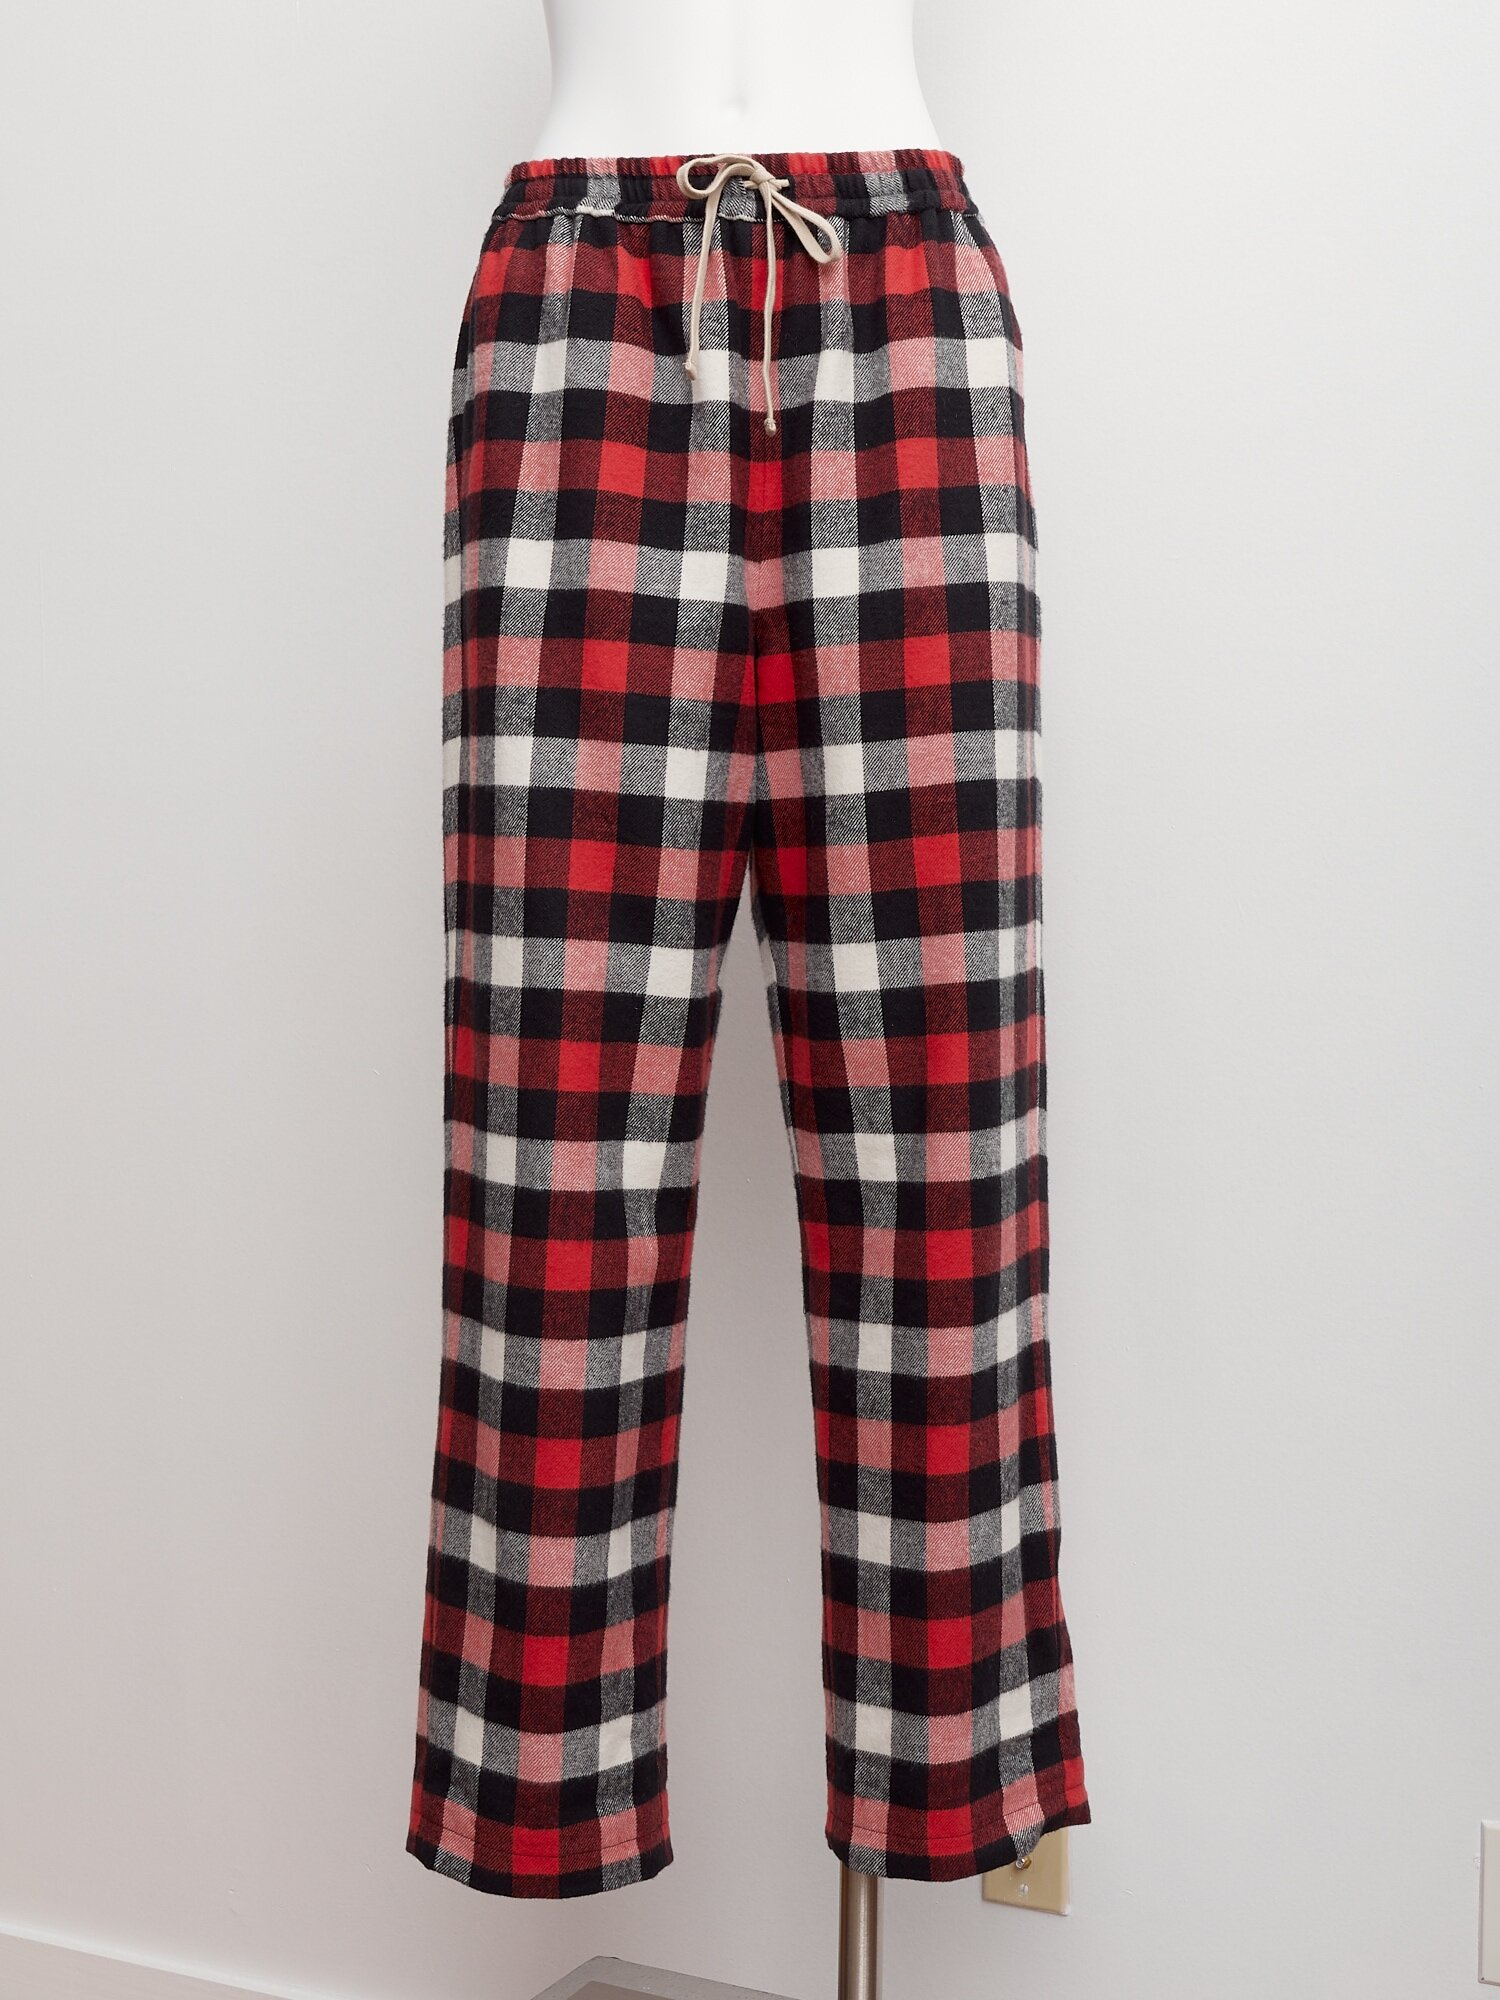 Shop Red Flannel Pants. Lined.